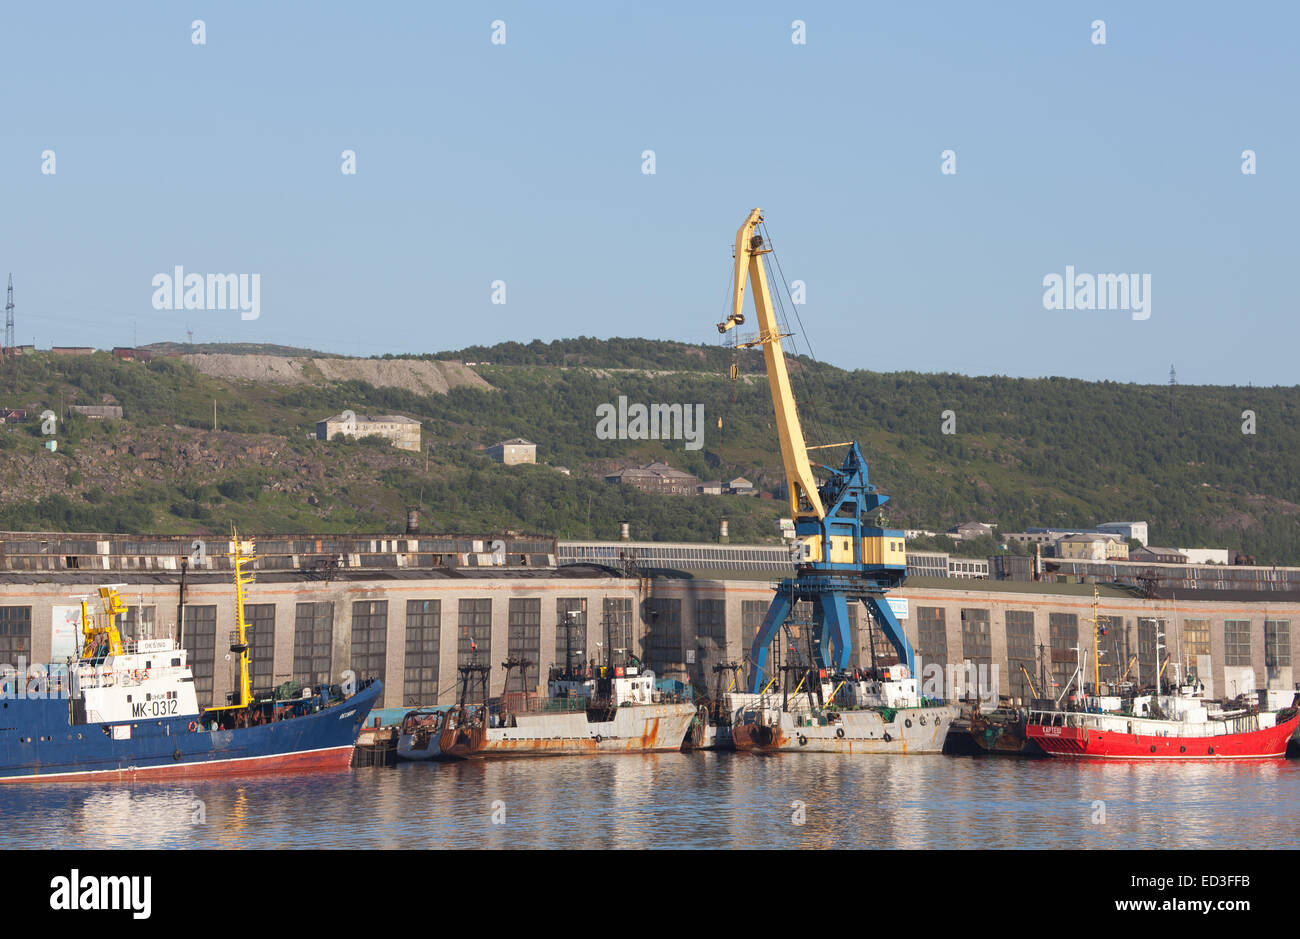 Ships in the port of Murmansk - Stock Image